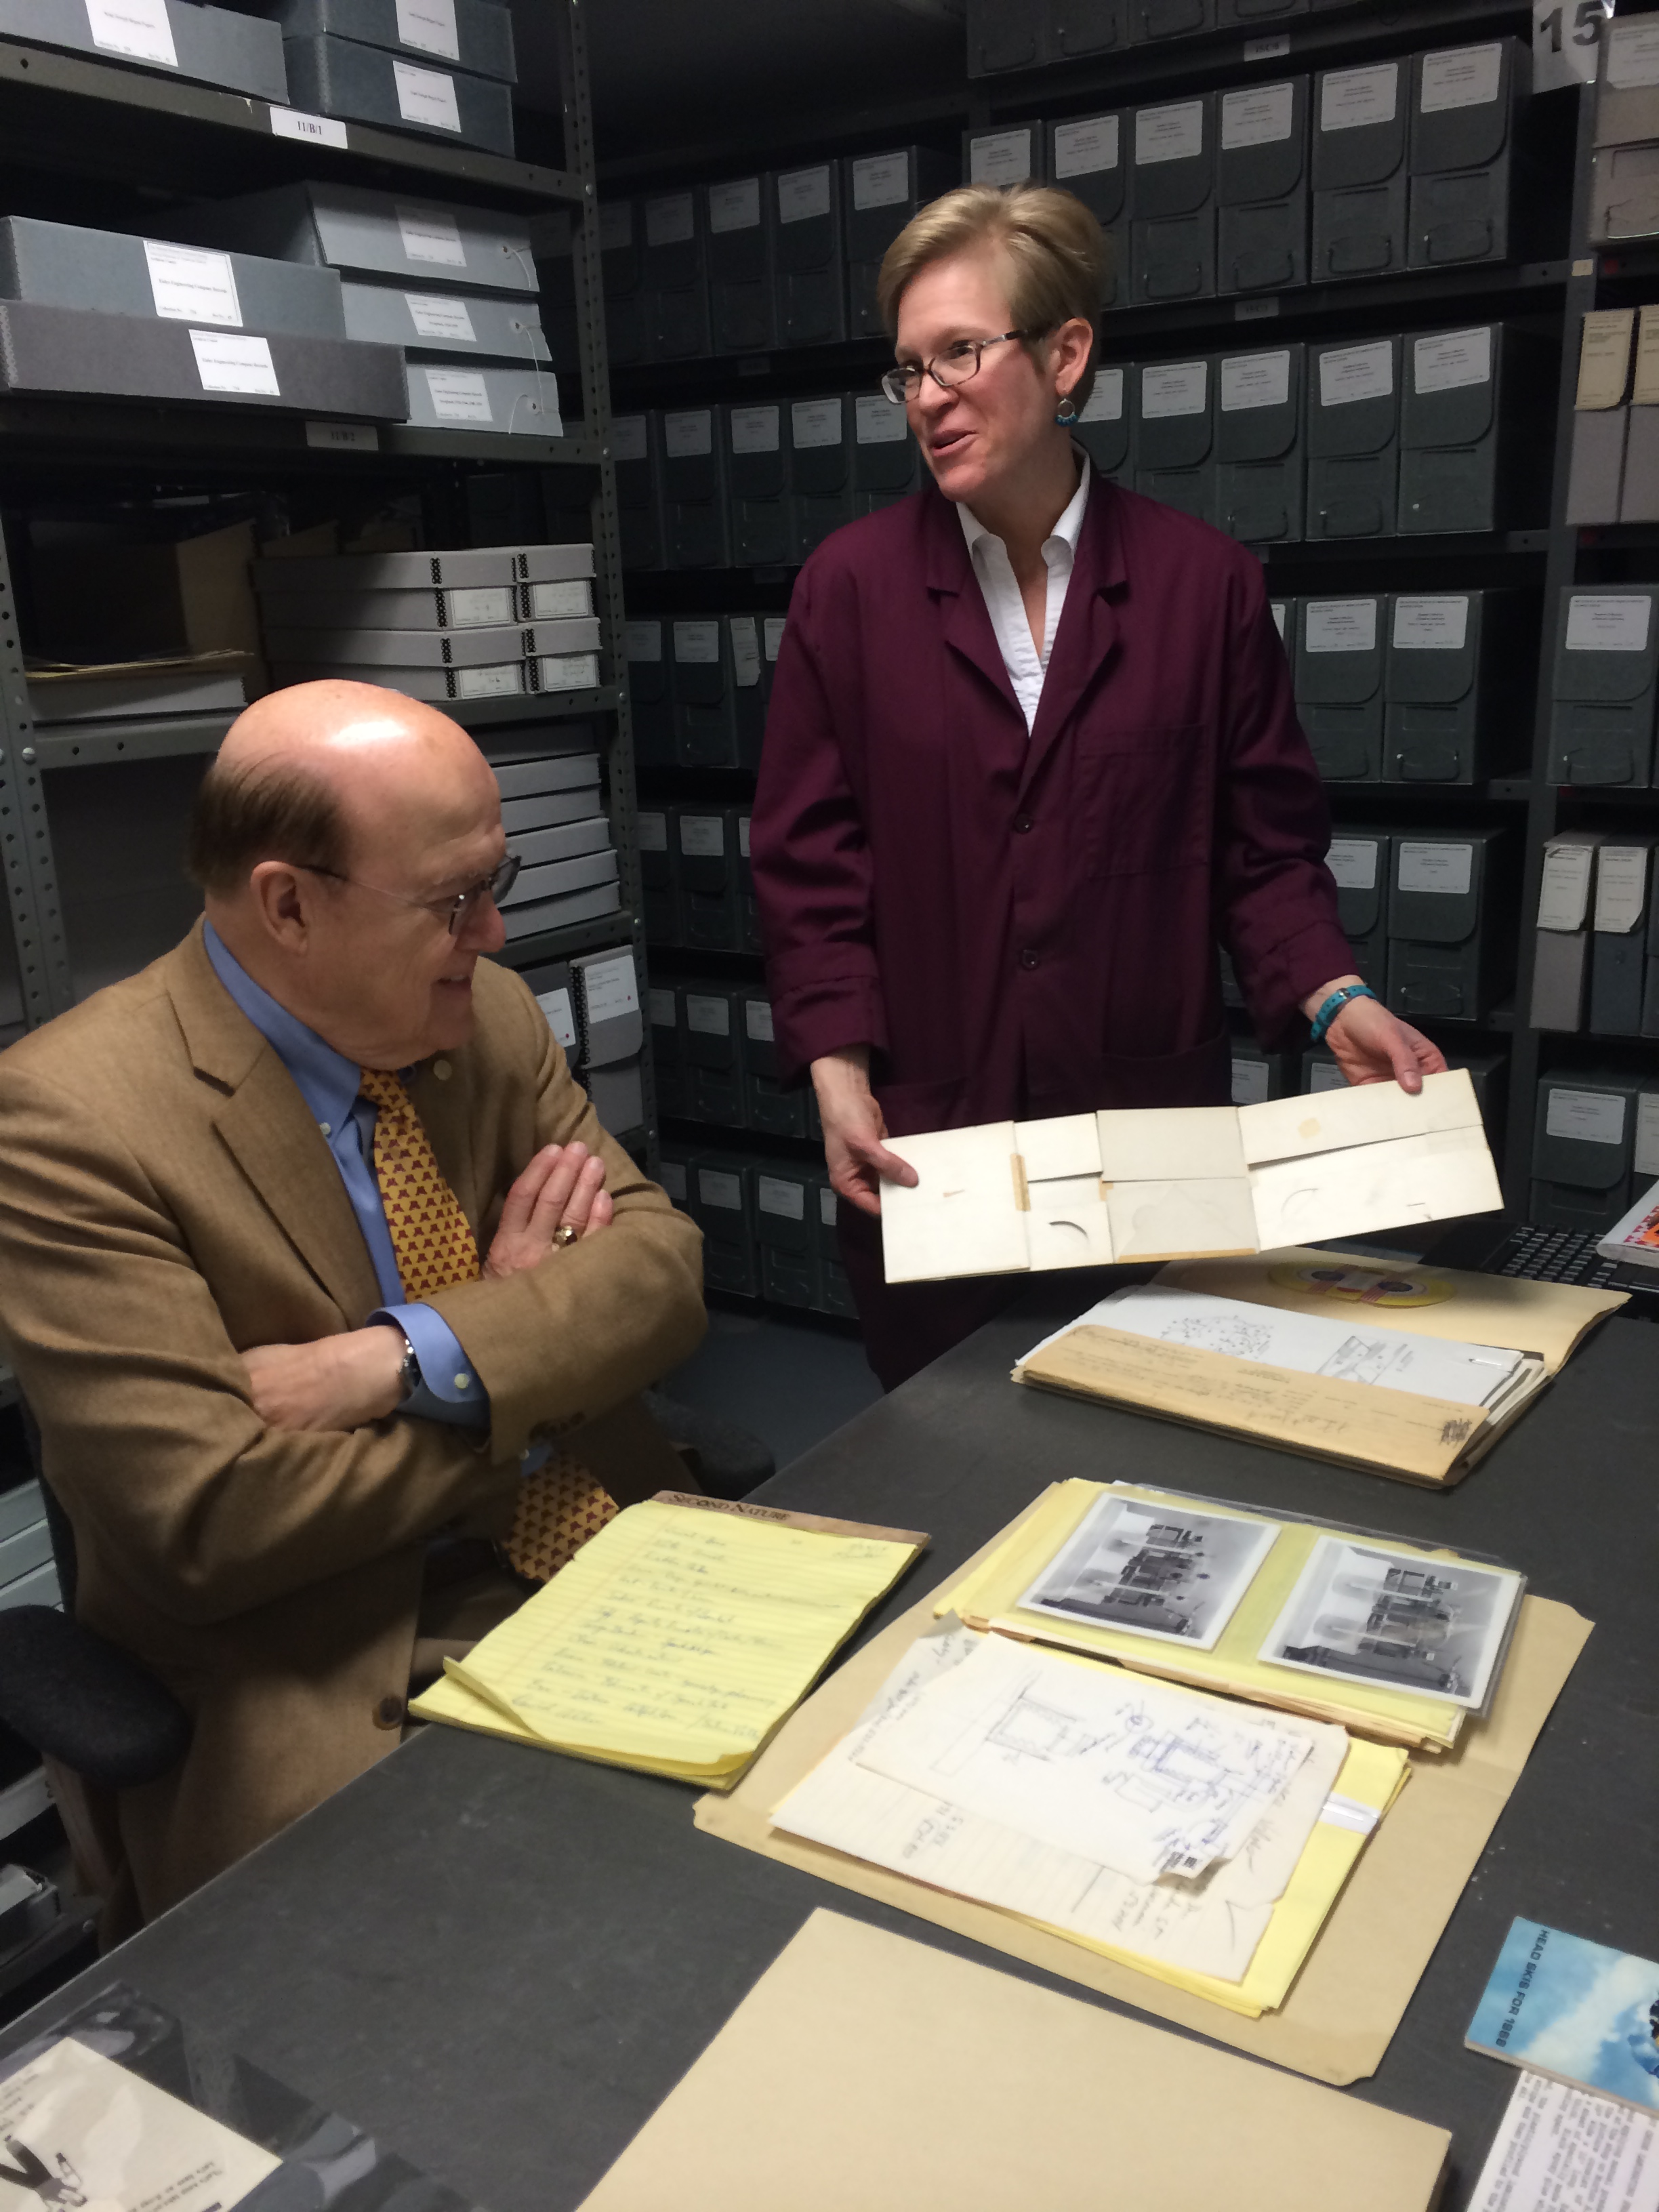 Archivist Alison Oswald shows Manny Villafaña archival documents.